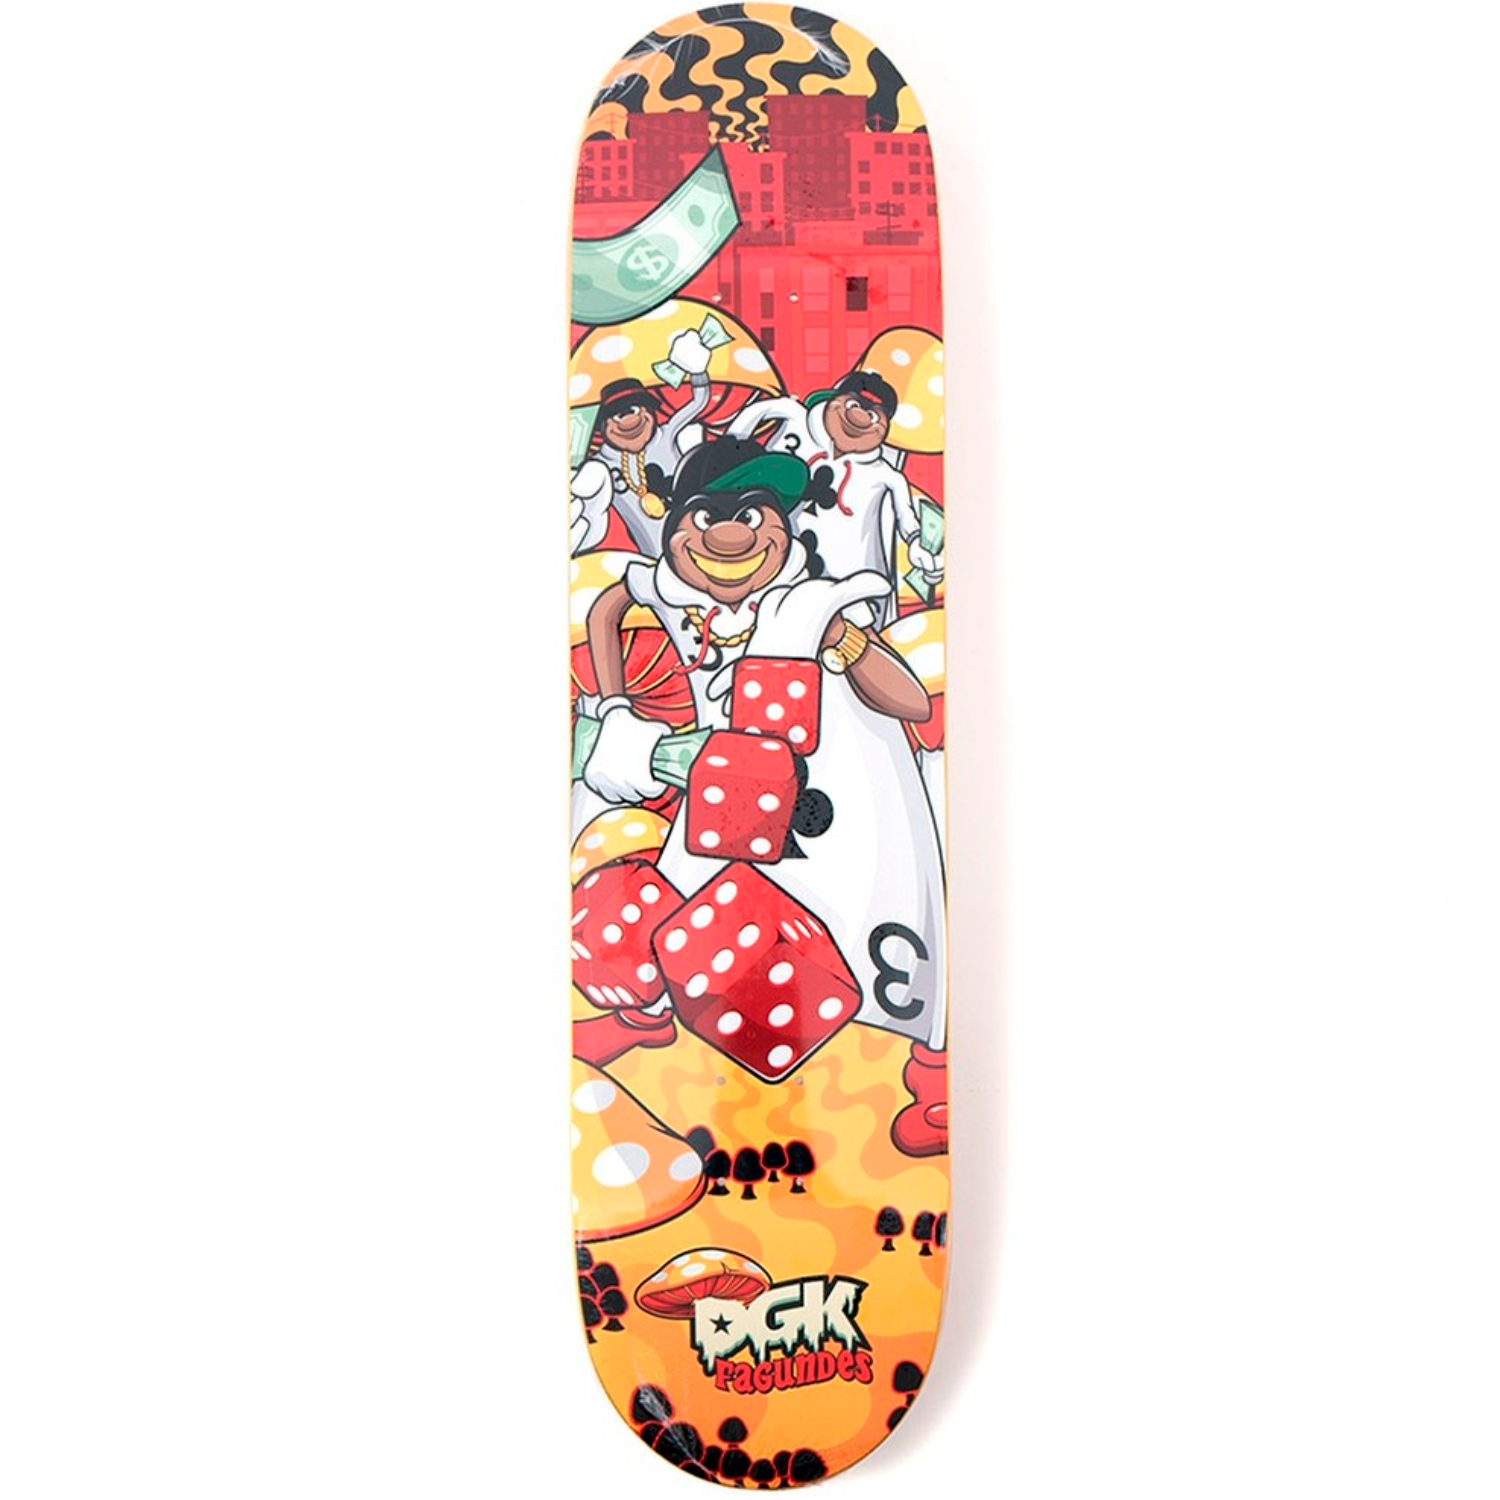 Tabla DGK Ghetto Land Fagundes - 8""